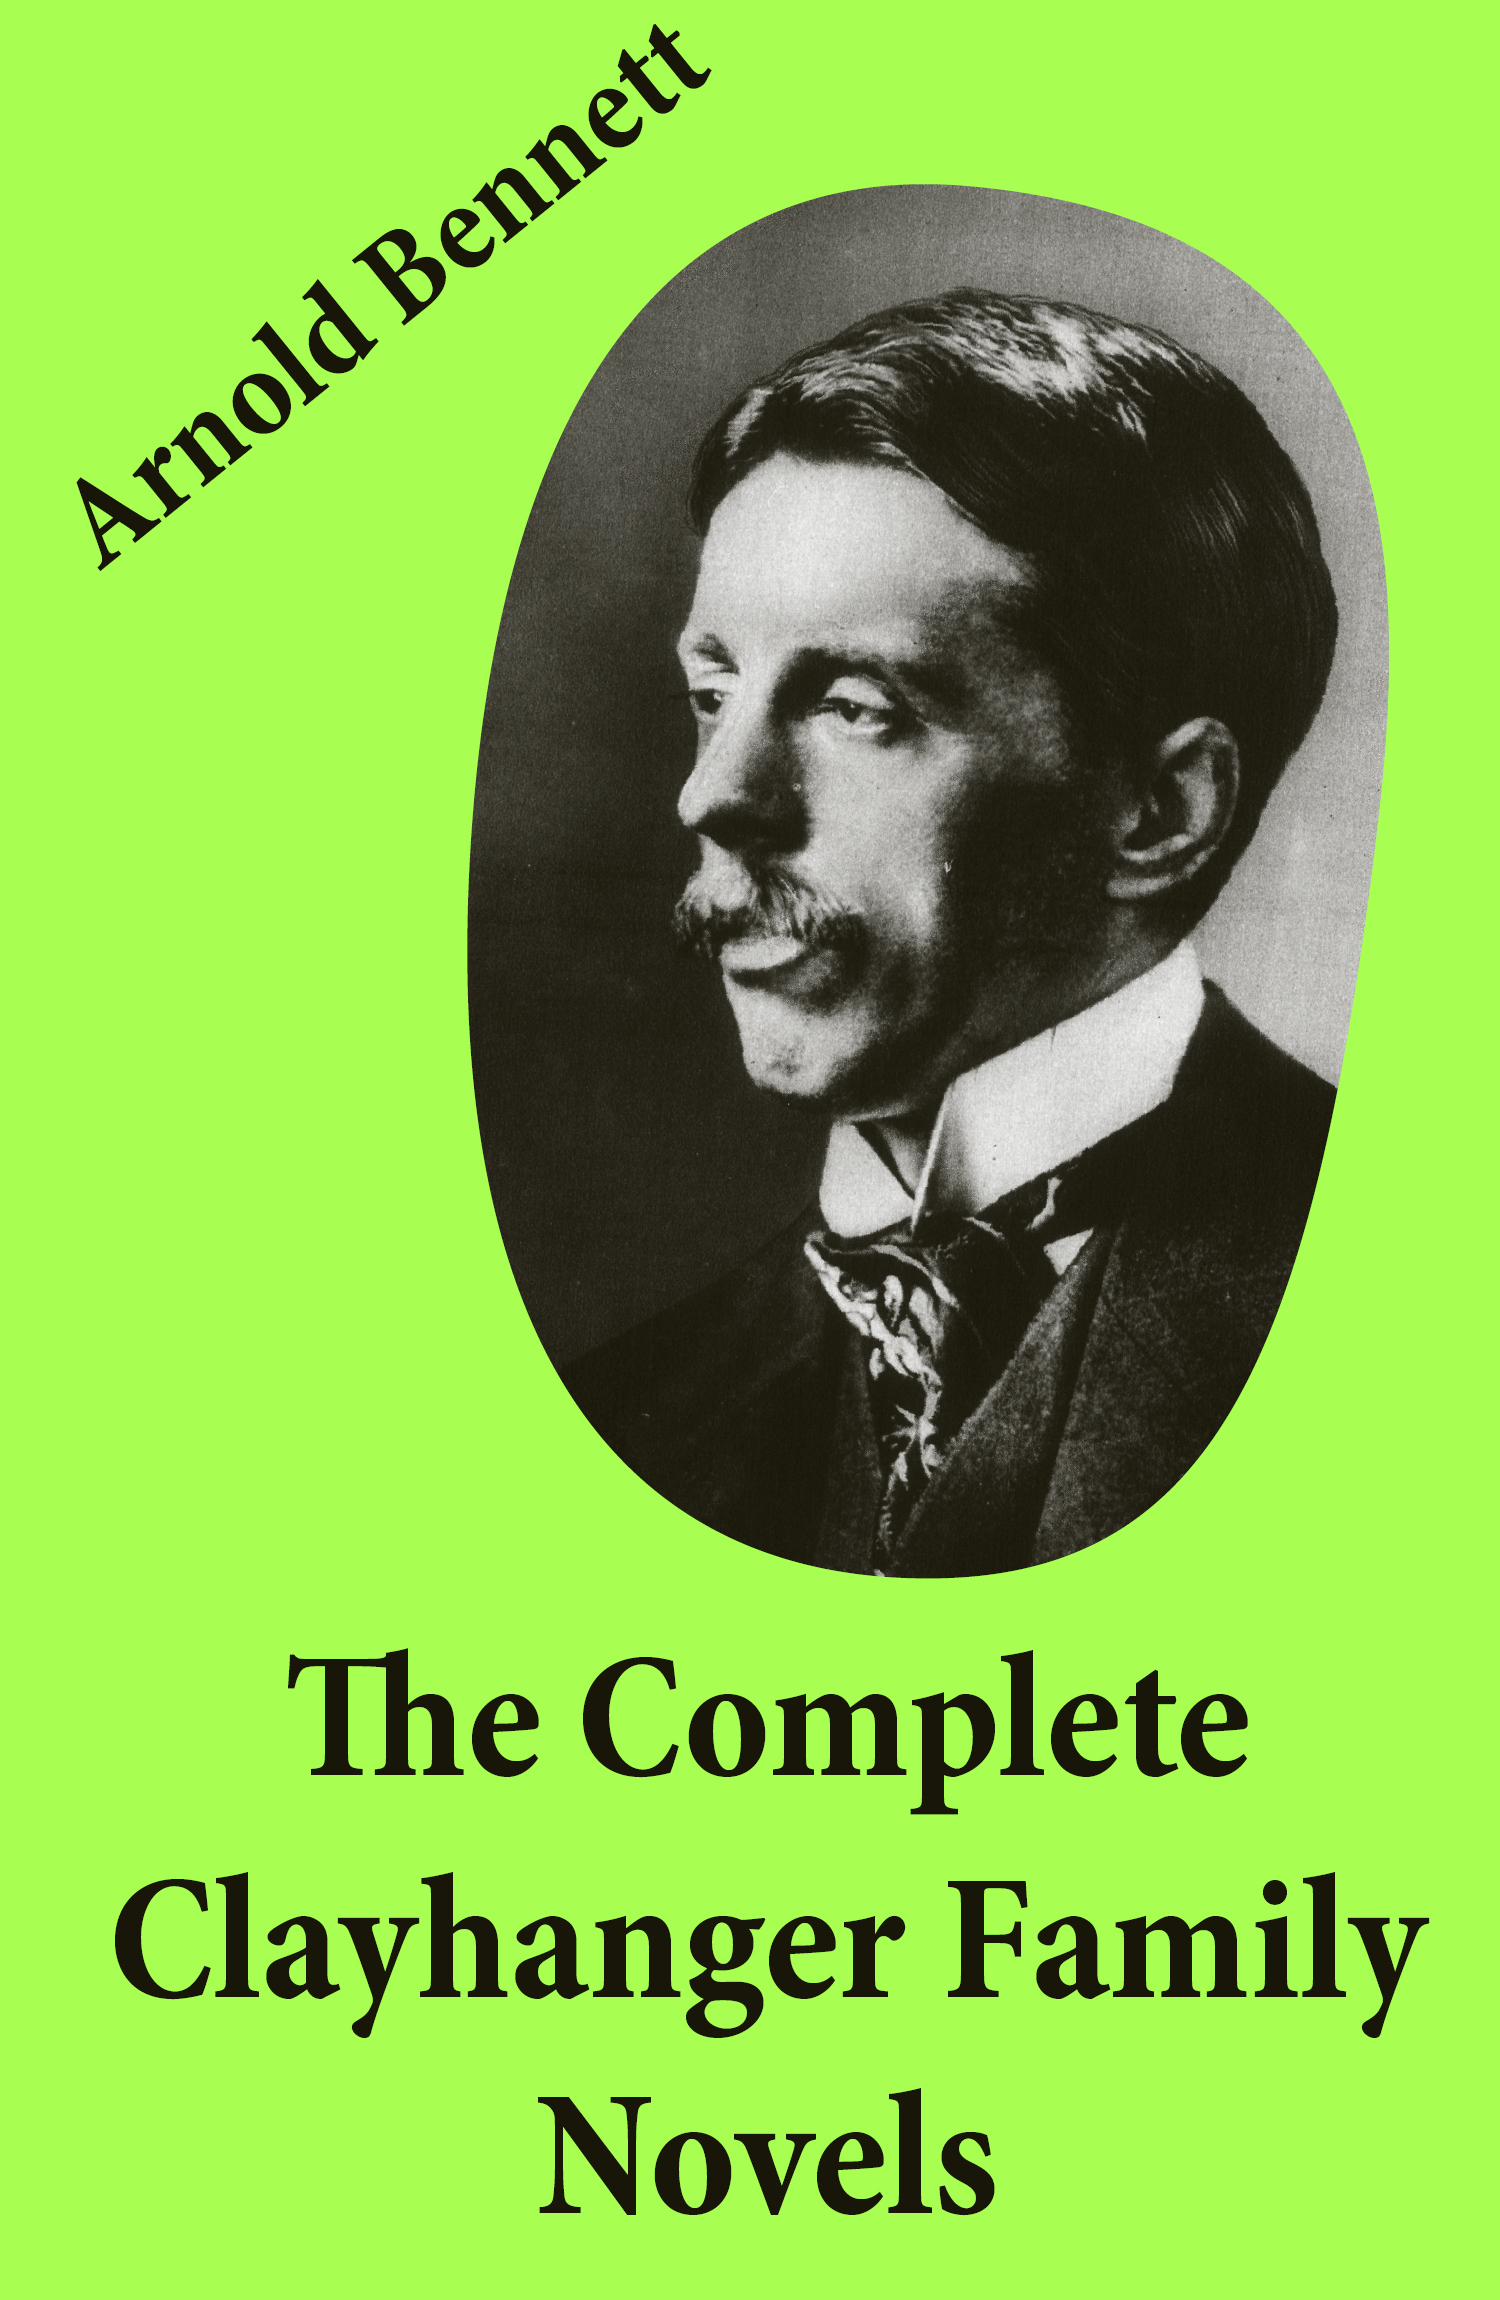 The Complete Clayhanger Family Novels (Clayhanger + Hilda Lessways + These Twain + The Roll Call)